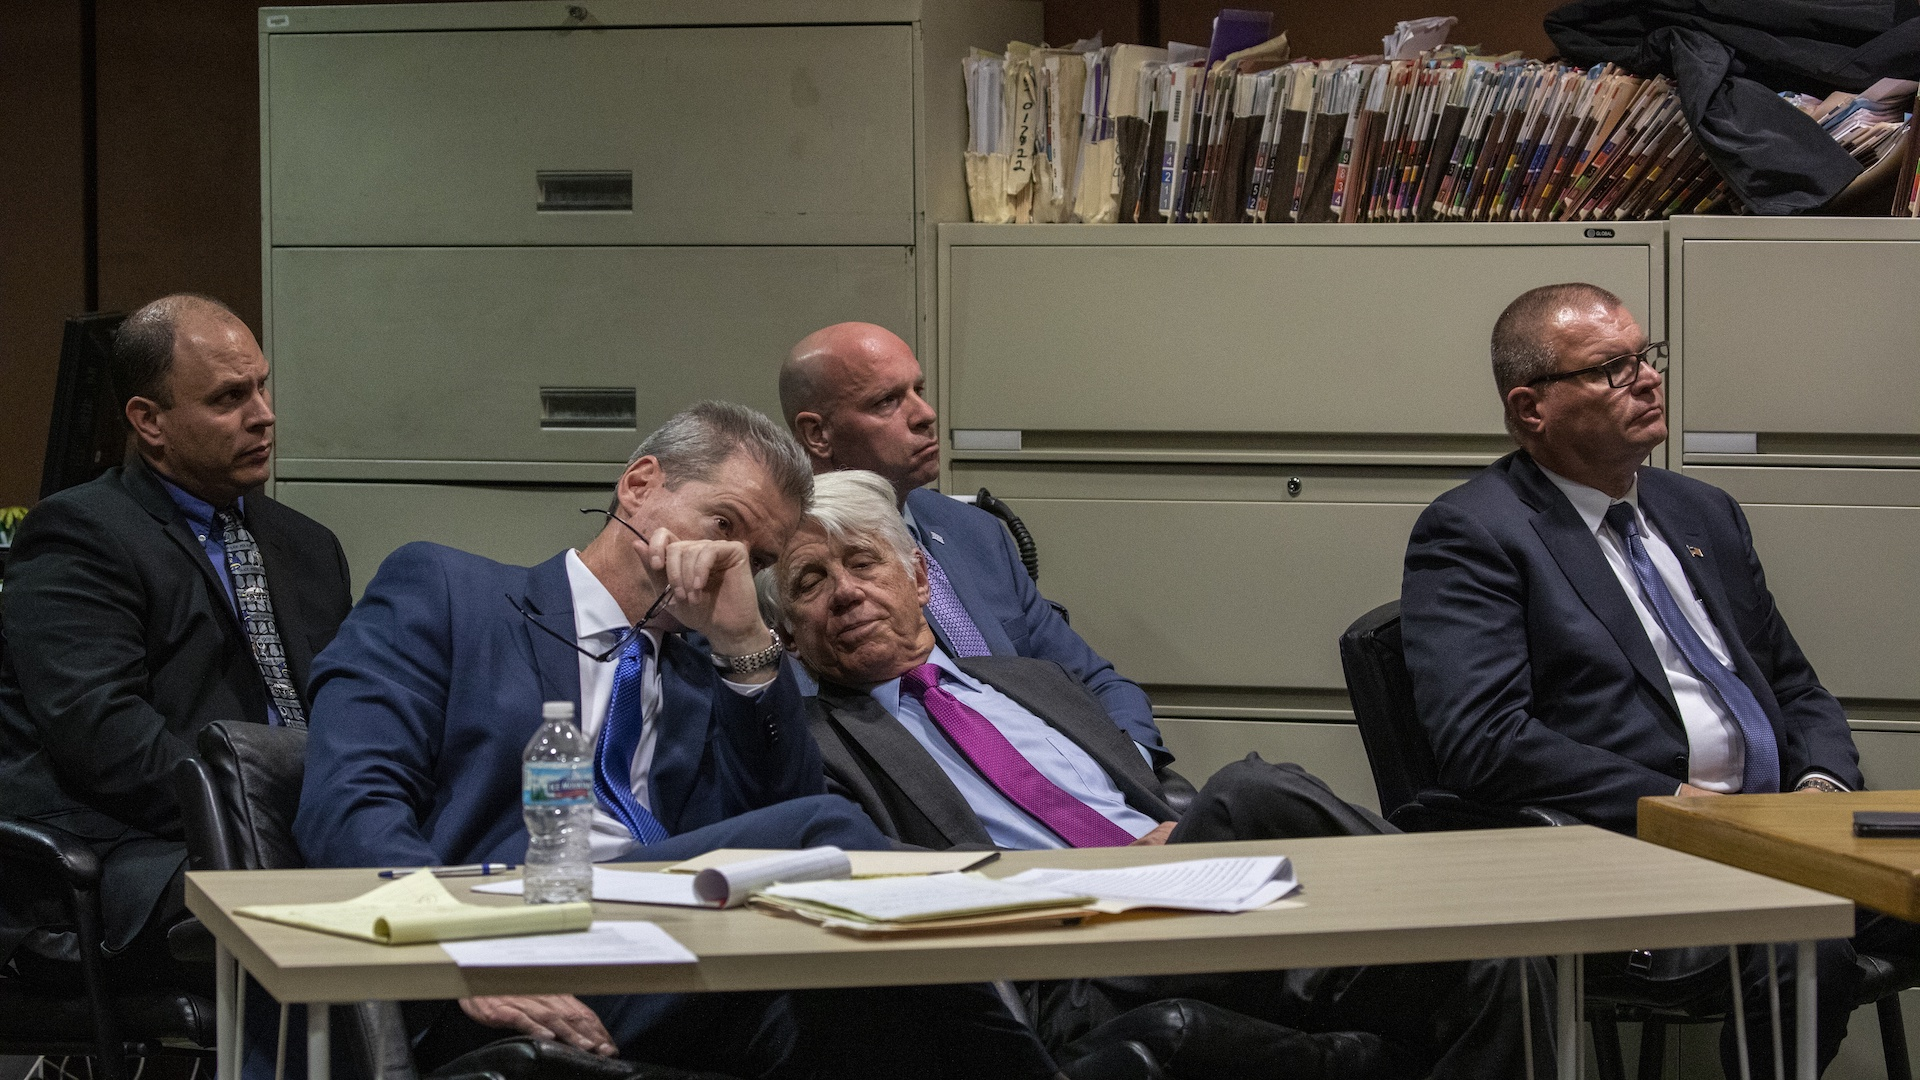 Back row, from left: Chicago police Officer Thomas Gaffney, ex-Officer Joseph Walsh and former Detective David March at a pretrial hearing on on Tuesday, Oct. 30, 2018. Seated in front are their attorneys, William Fahy, left, and Thomas Breen. (Zbigniew Bzdak / Chicago Tribune / Pool)